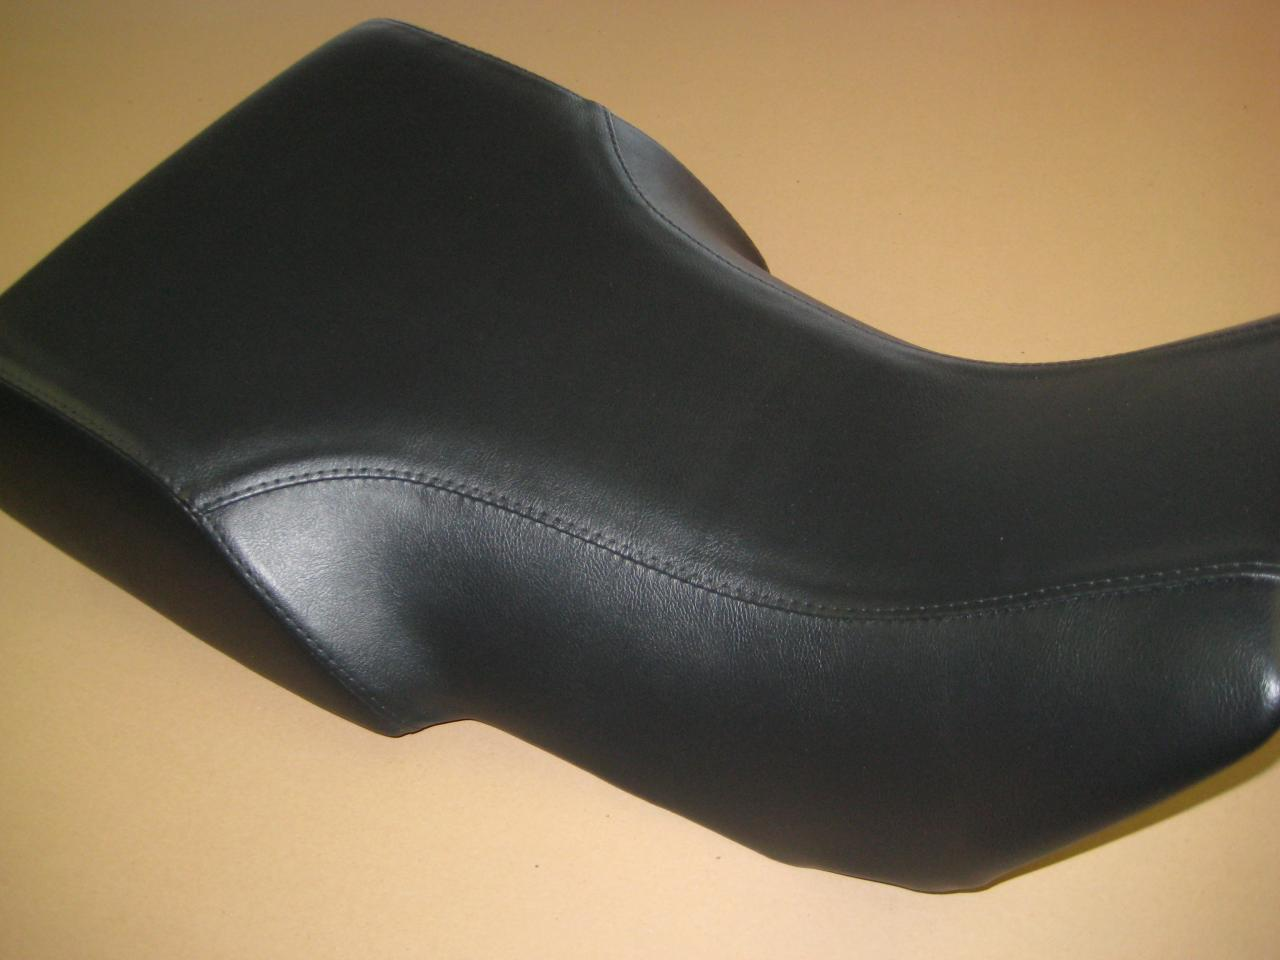 Auto Upholstery Repair Classic Car Restoration Shop Specializing - Vinyl for motorcycle seat